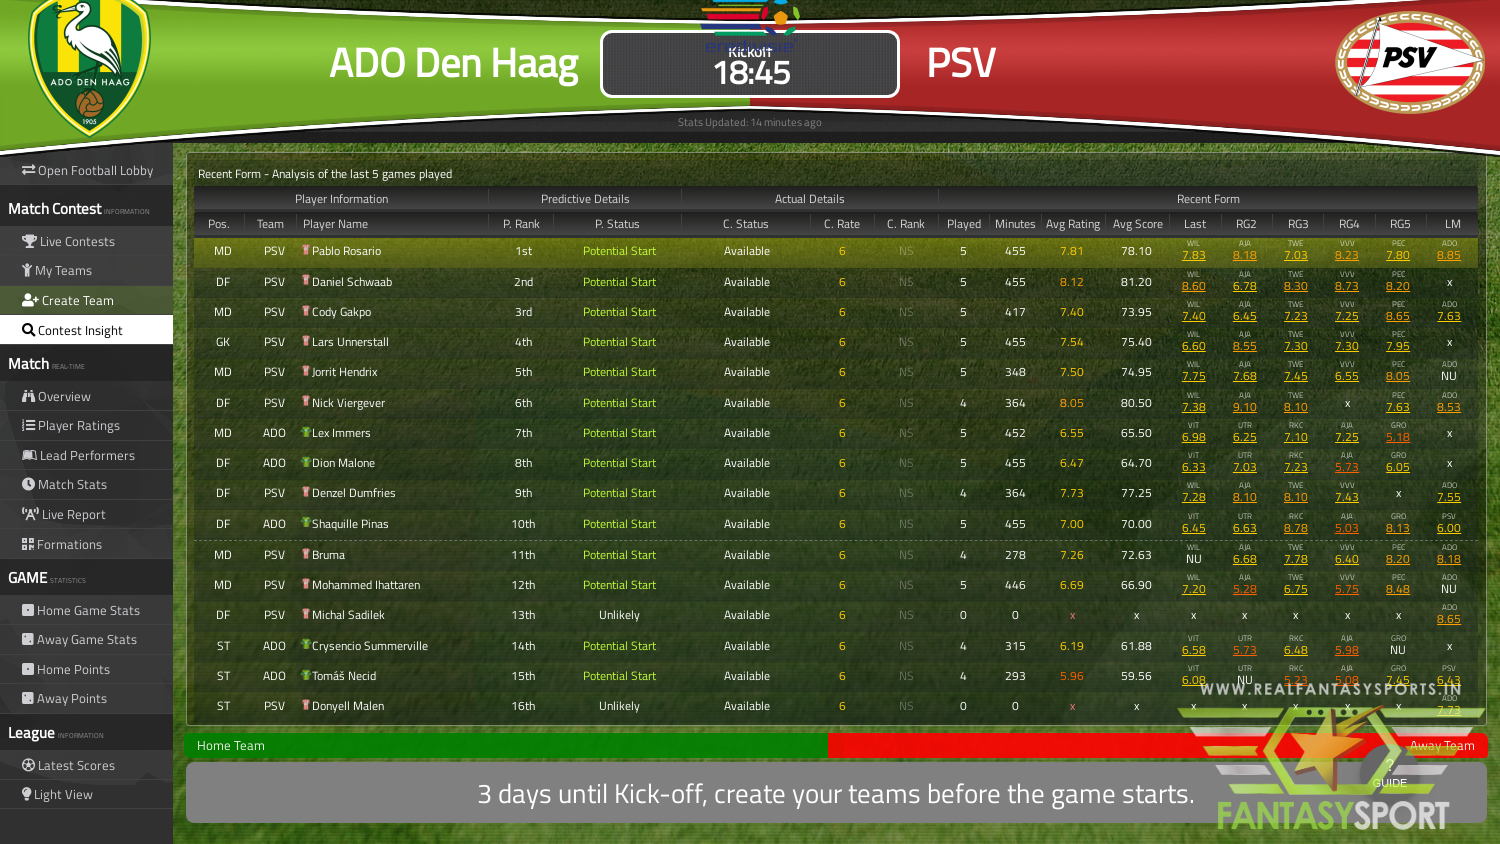 Ado Den Haag Vs Psv Fantasy Football Team